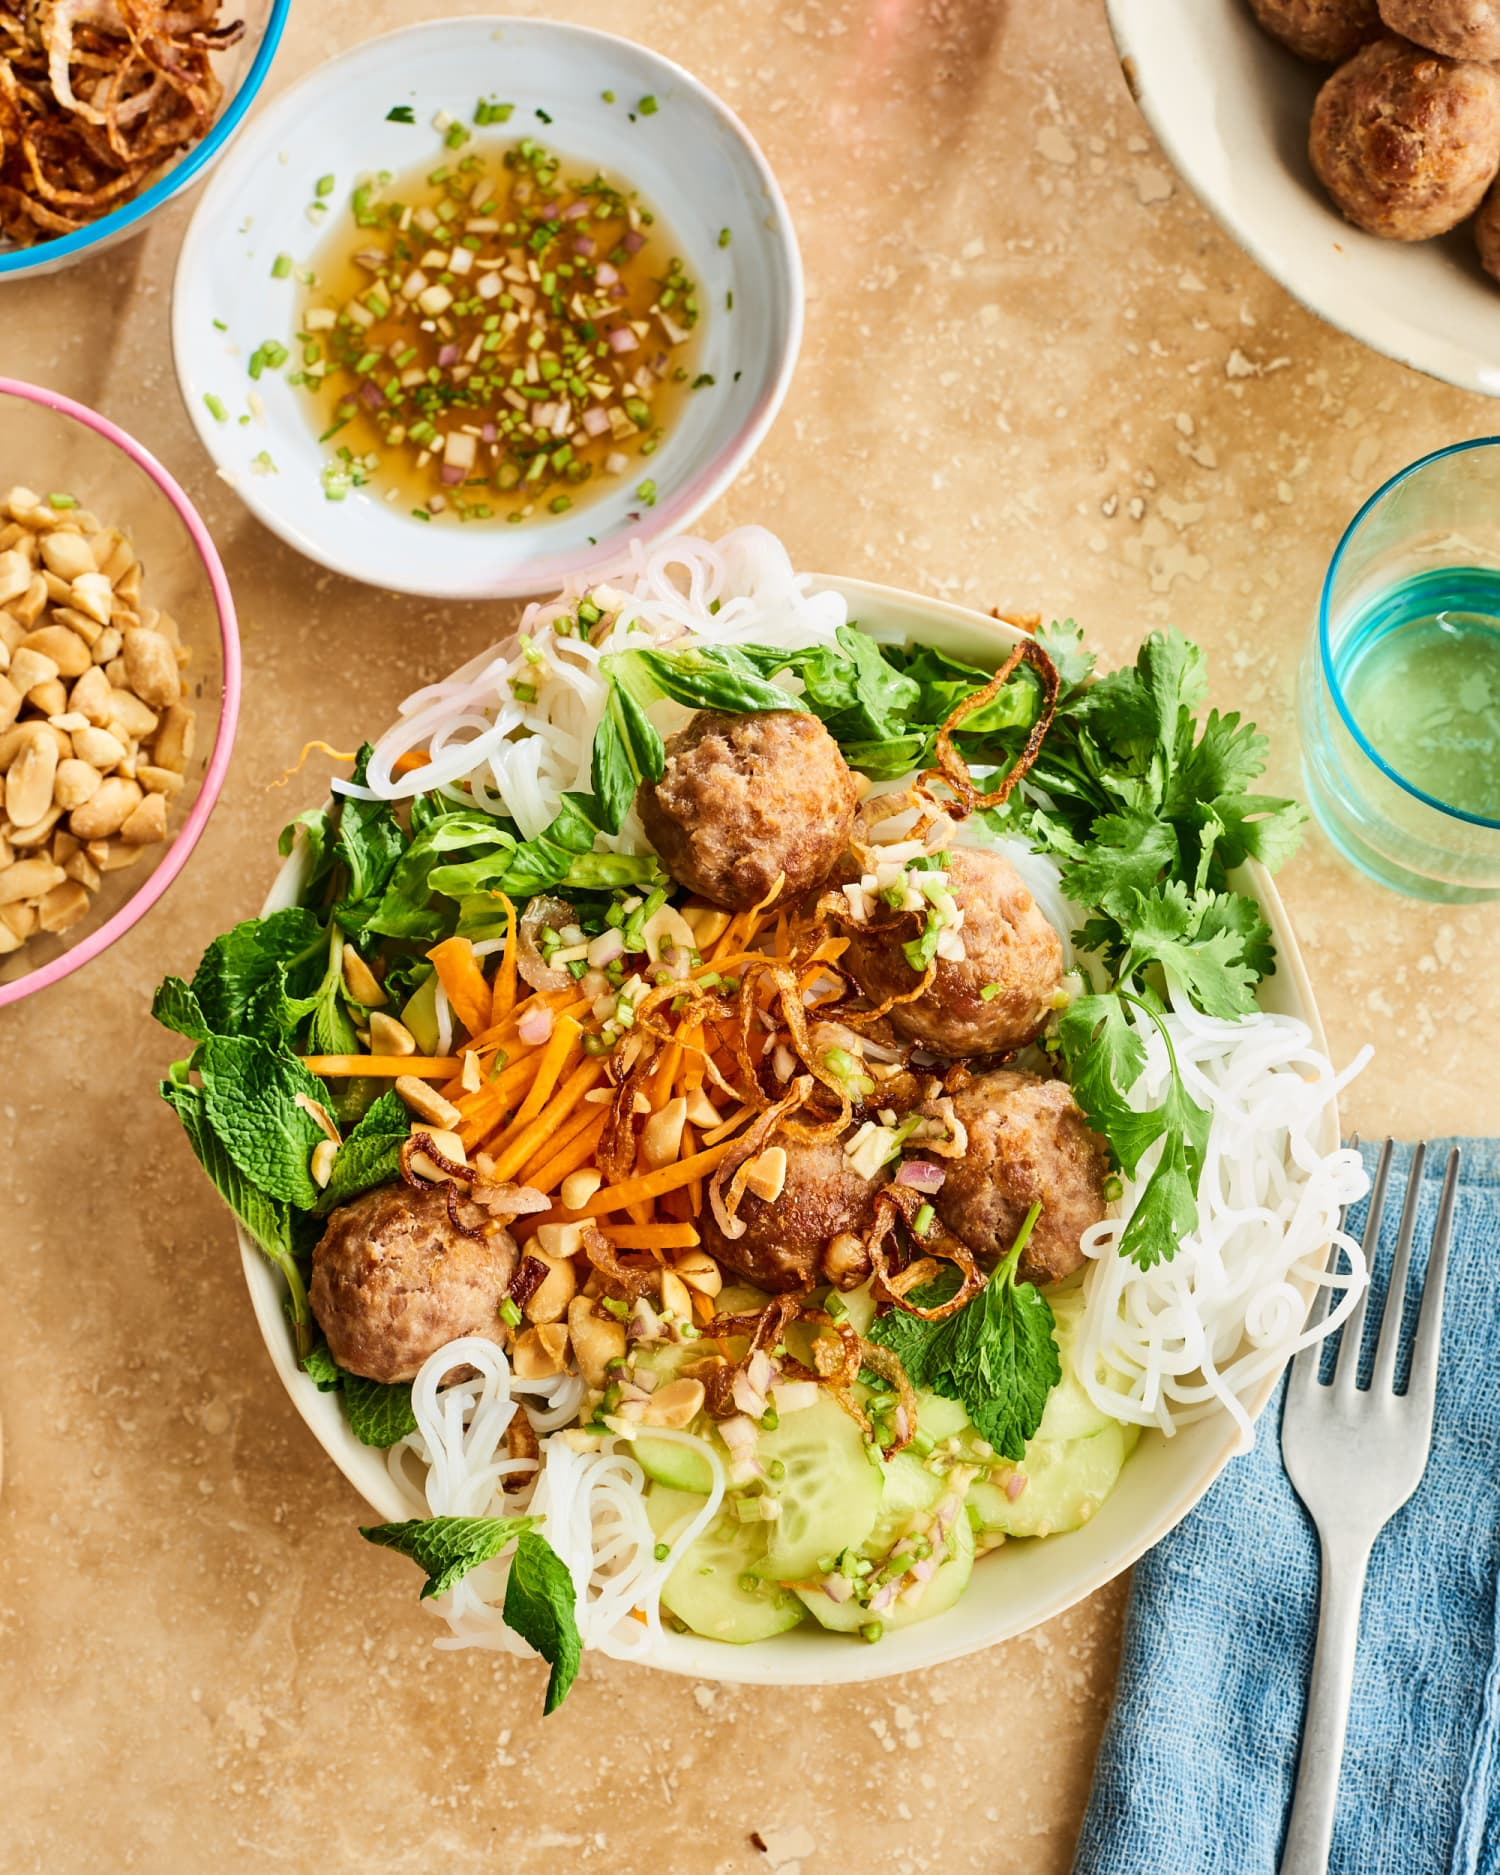 This Crispy, Crunchy Noodle Bowl with Meatballs Is Supremely Refreshing